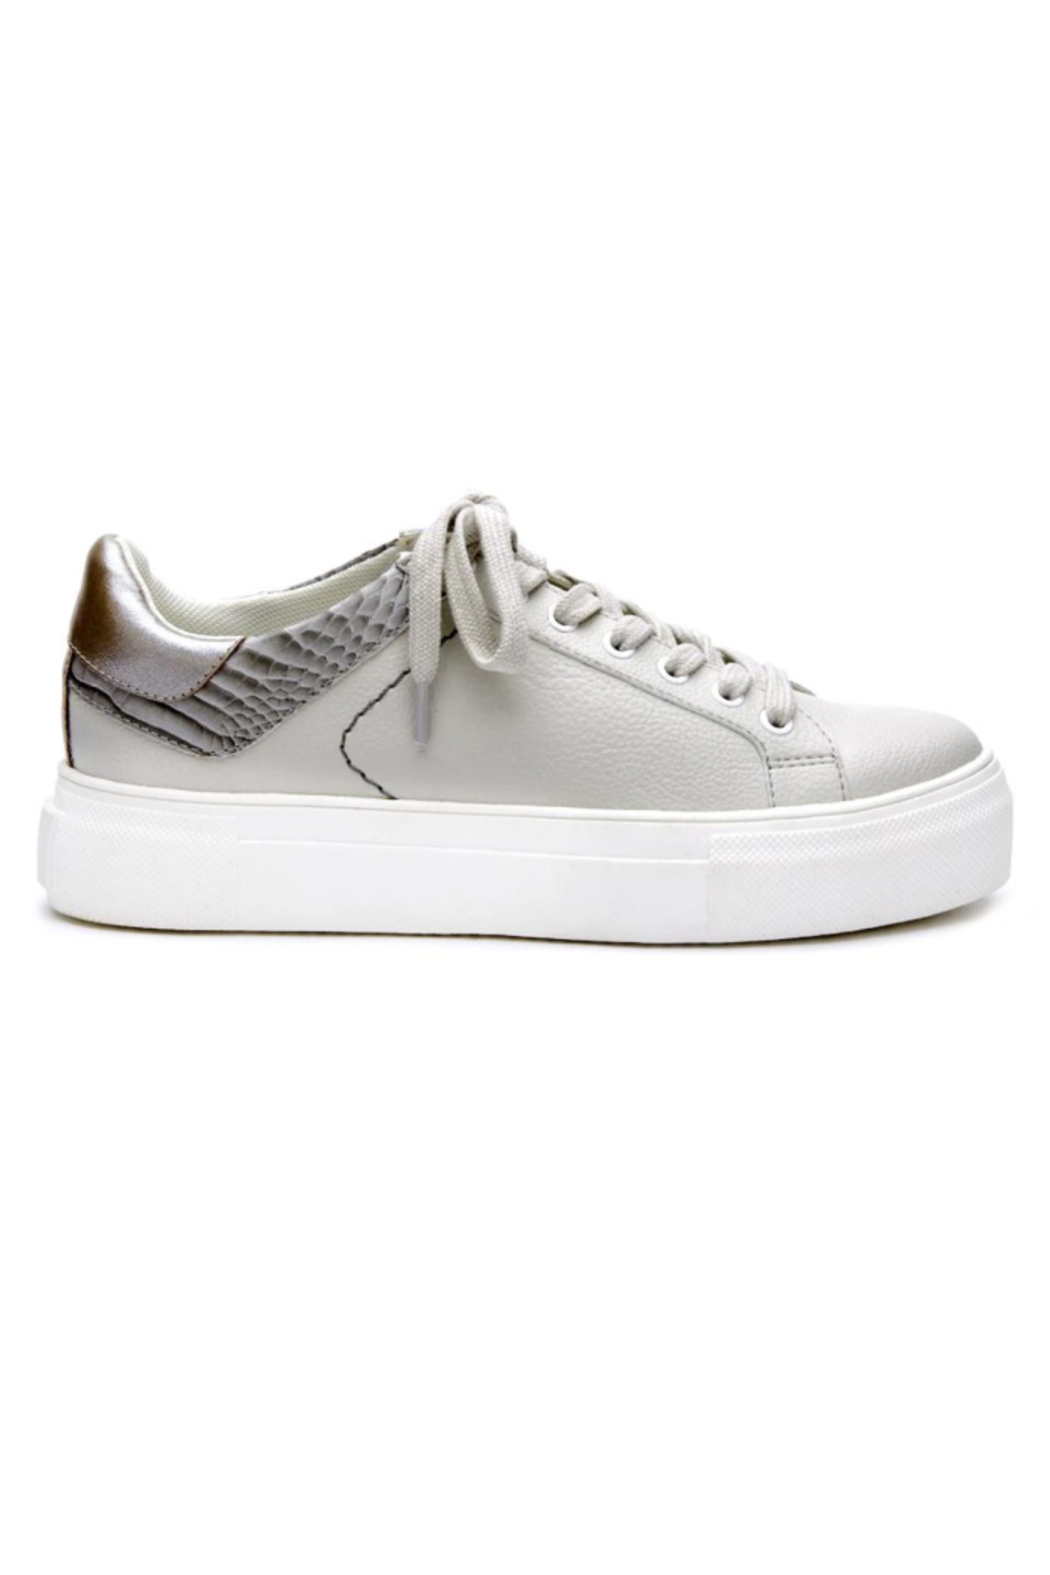 Coconuts by Matisse Tessa Sneaker - Main Image